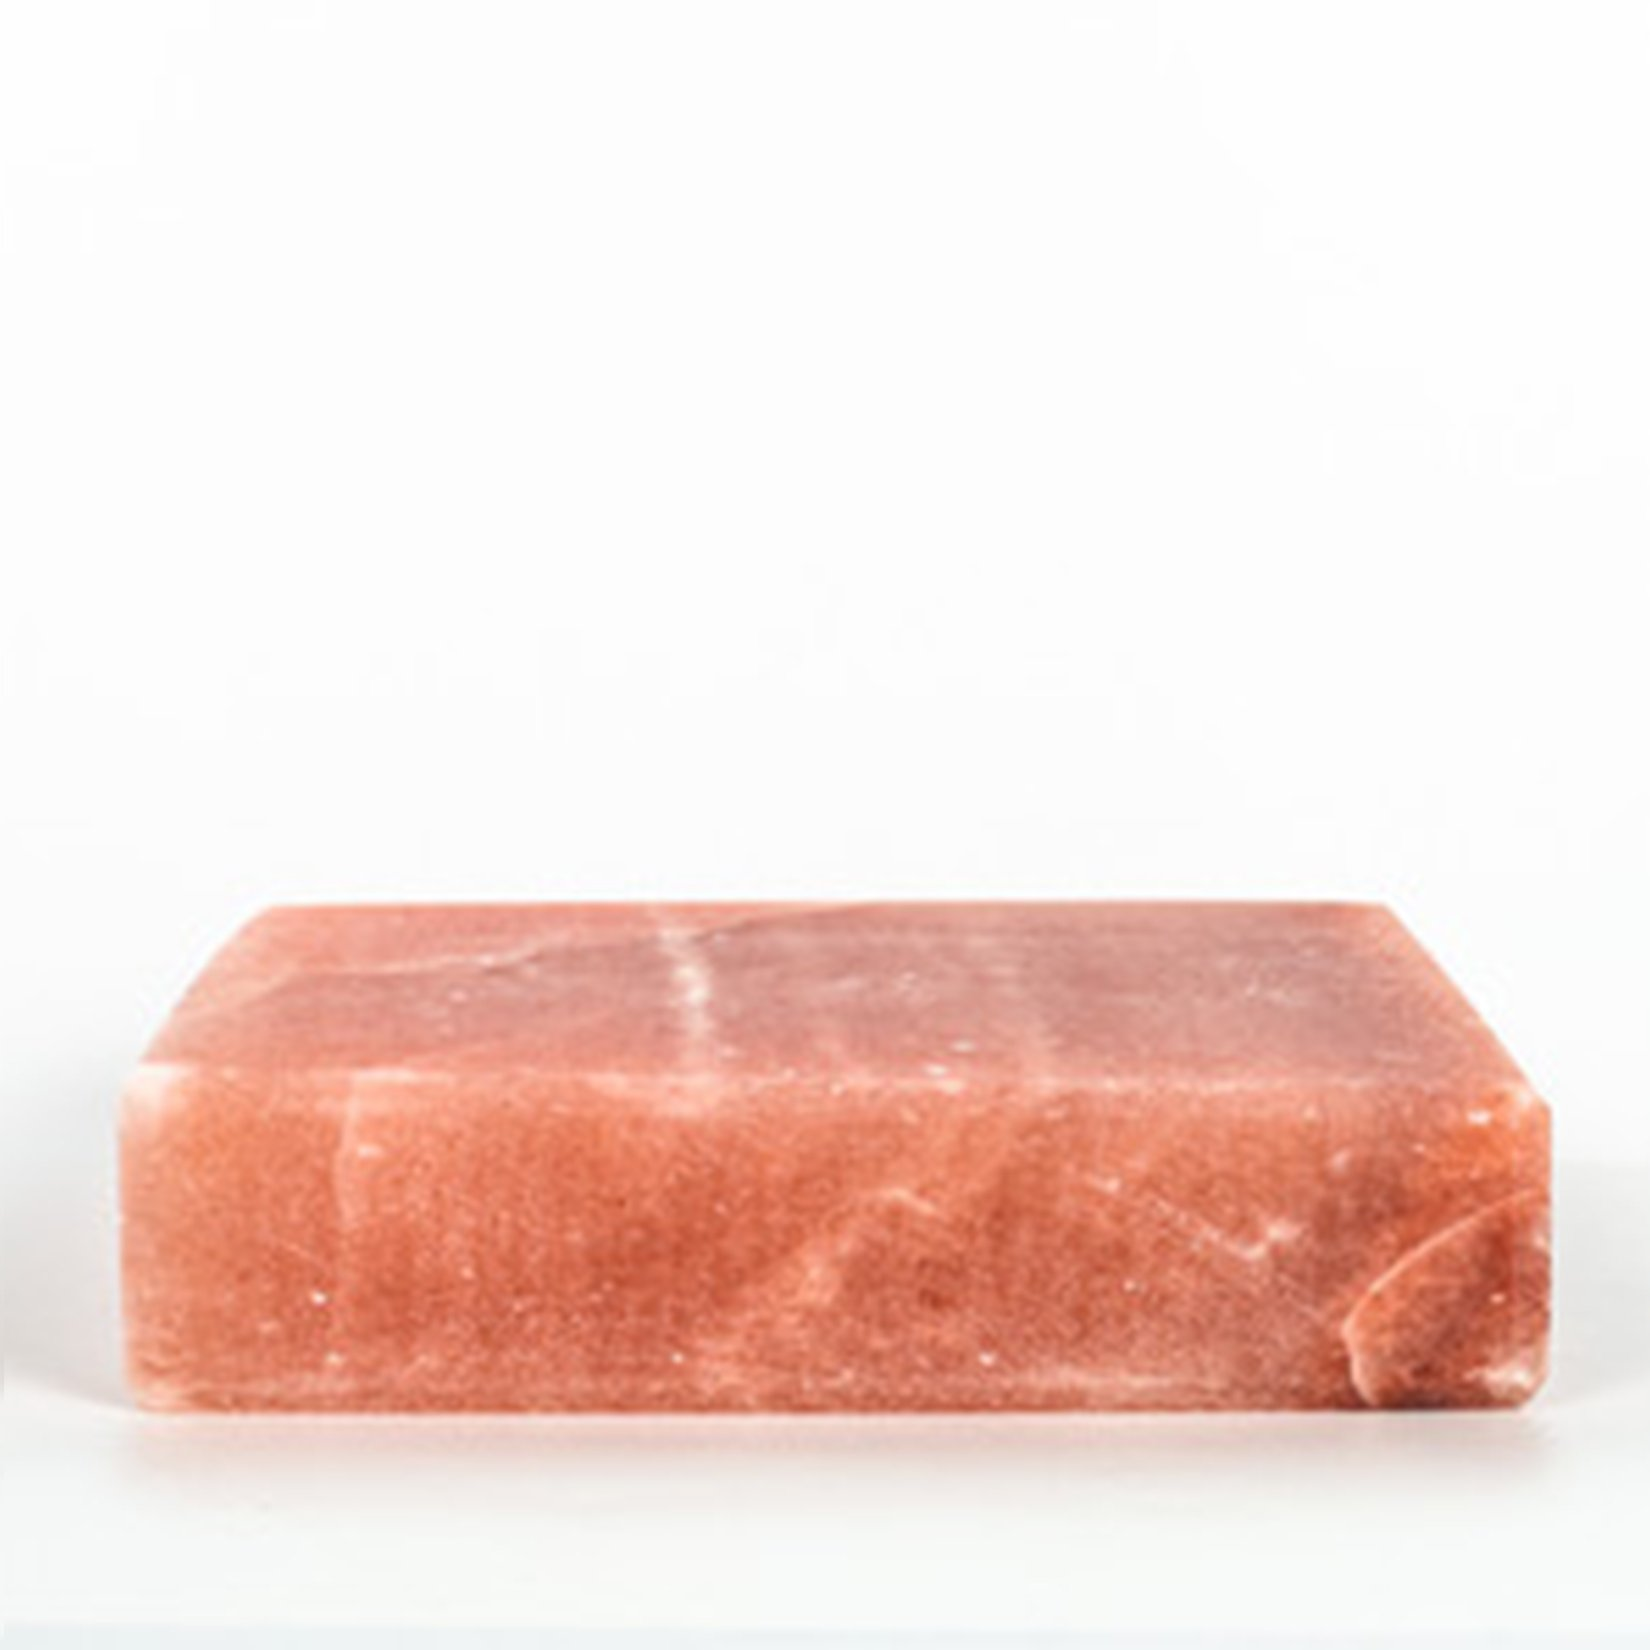 8x8x2 Himalayan Salt Plate Exclusively By Black Tai Salt Co. Authentic